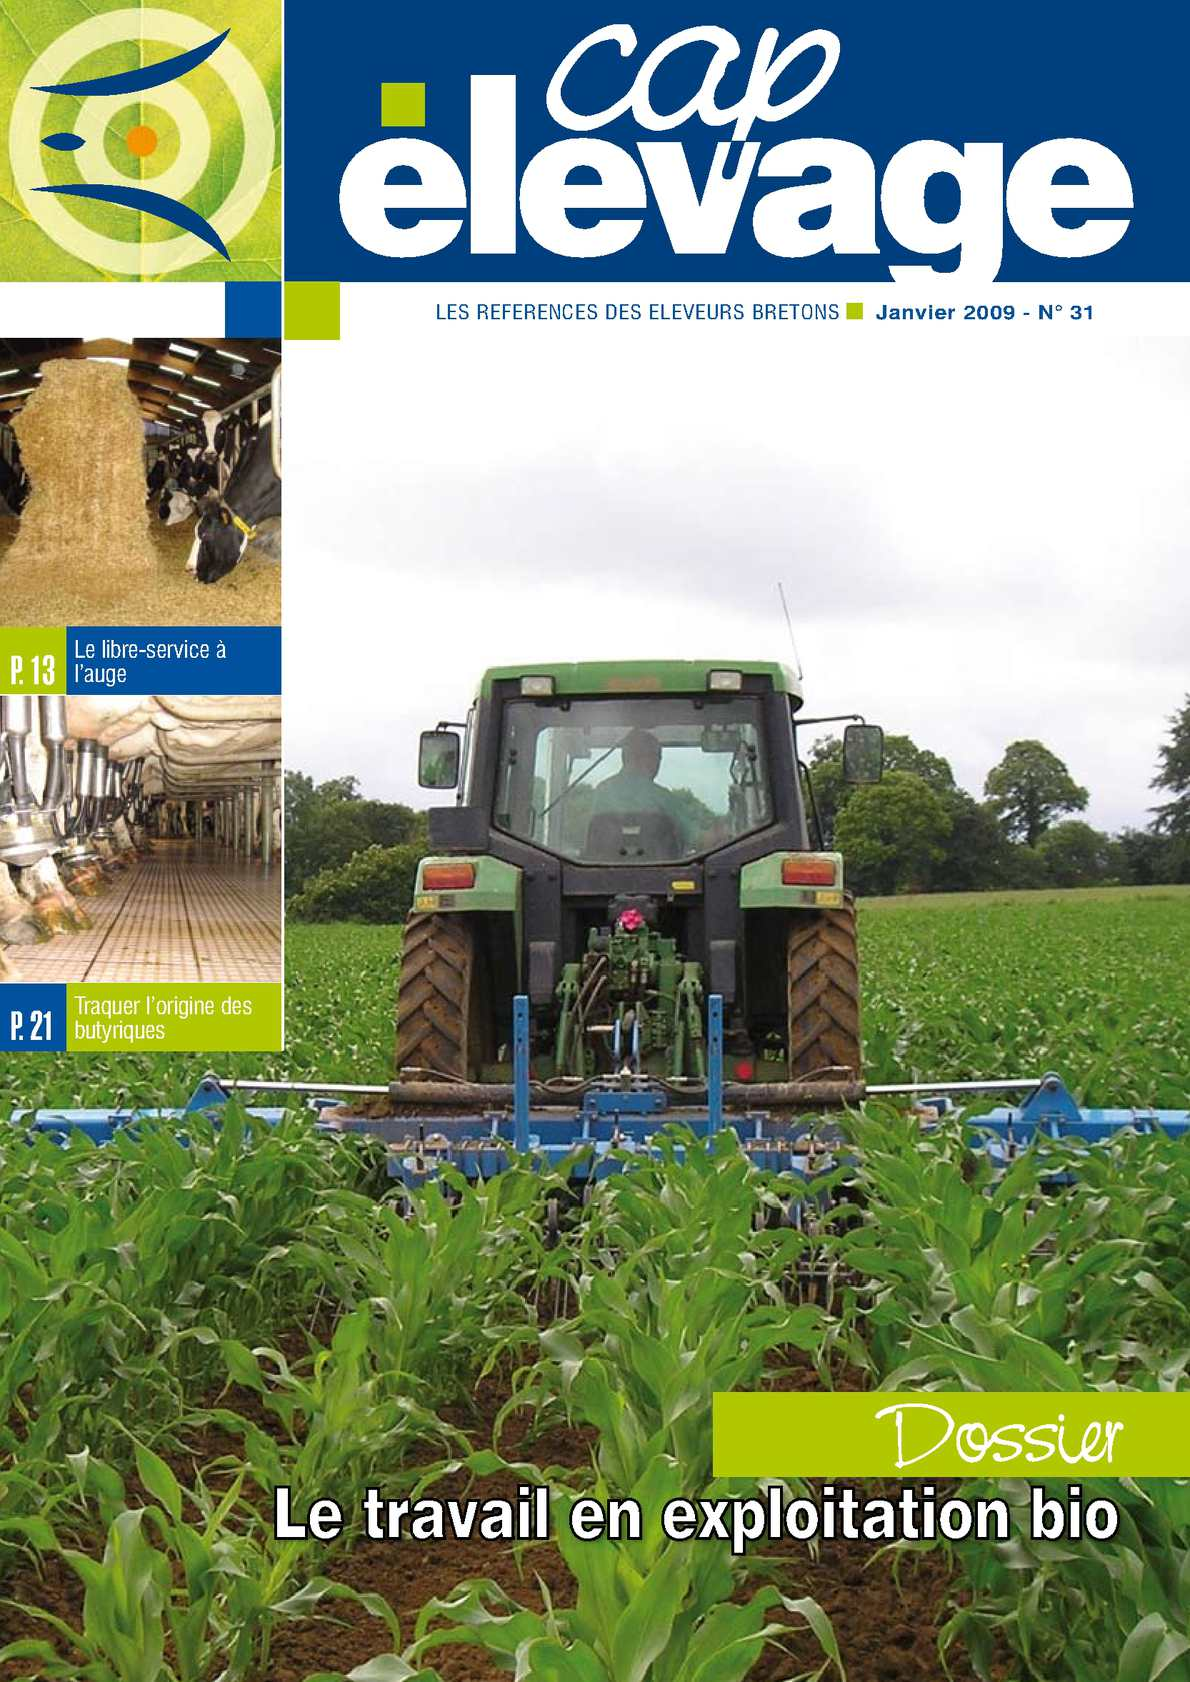 Calam o cap elevage n 31 for Chambre agriculture bretagne